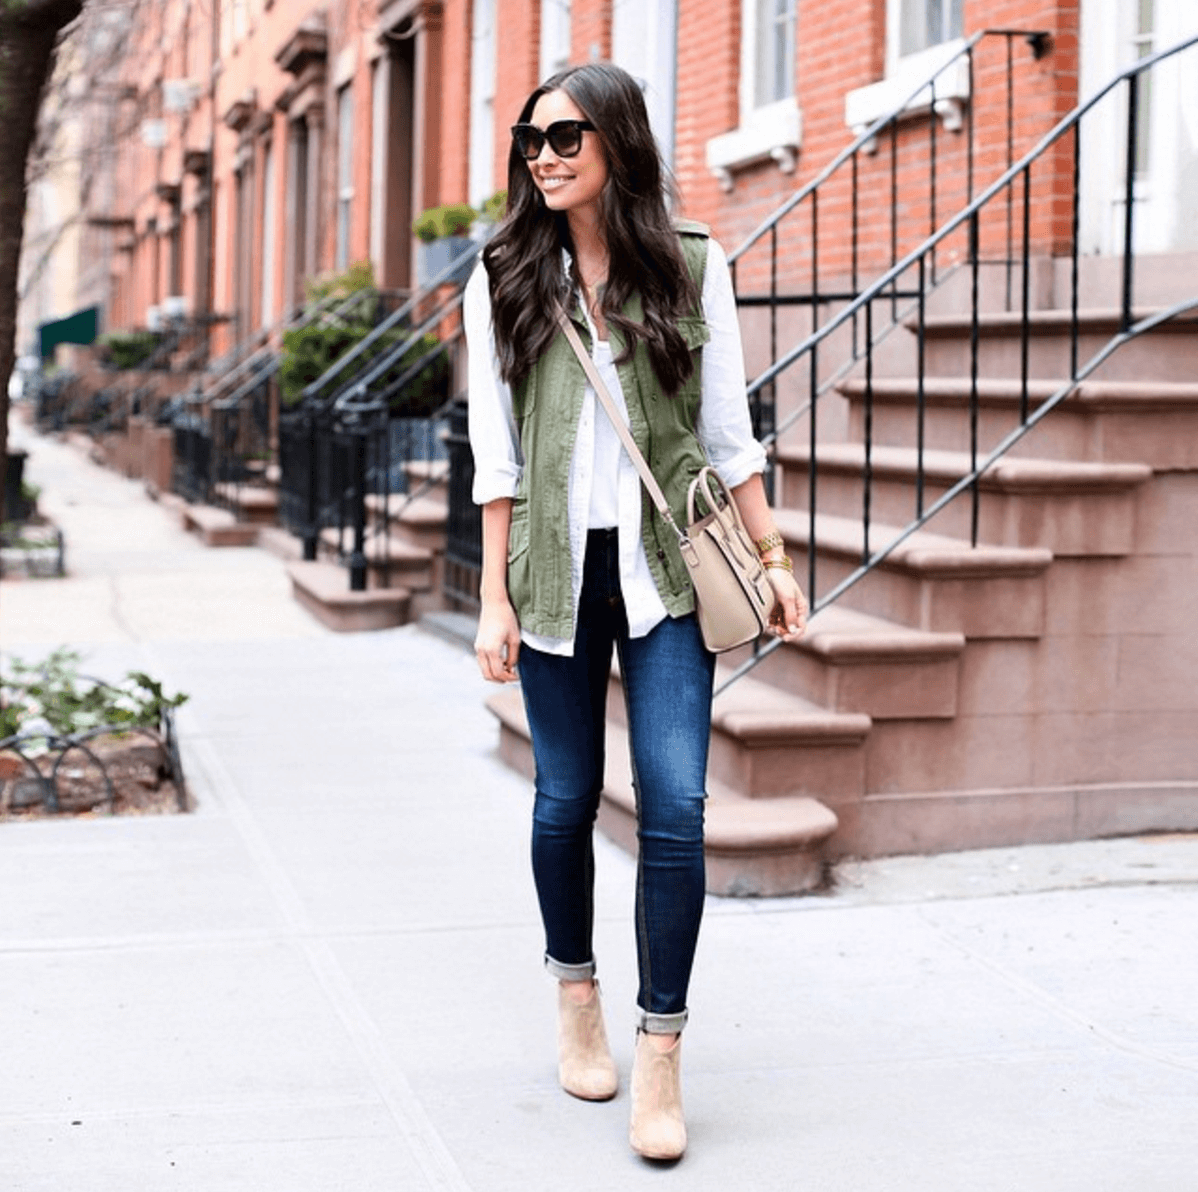 Curiosities Insider Interviews Kat Tanita NYC Fashion Lifestyle Blogger